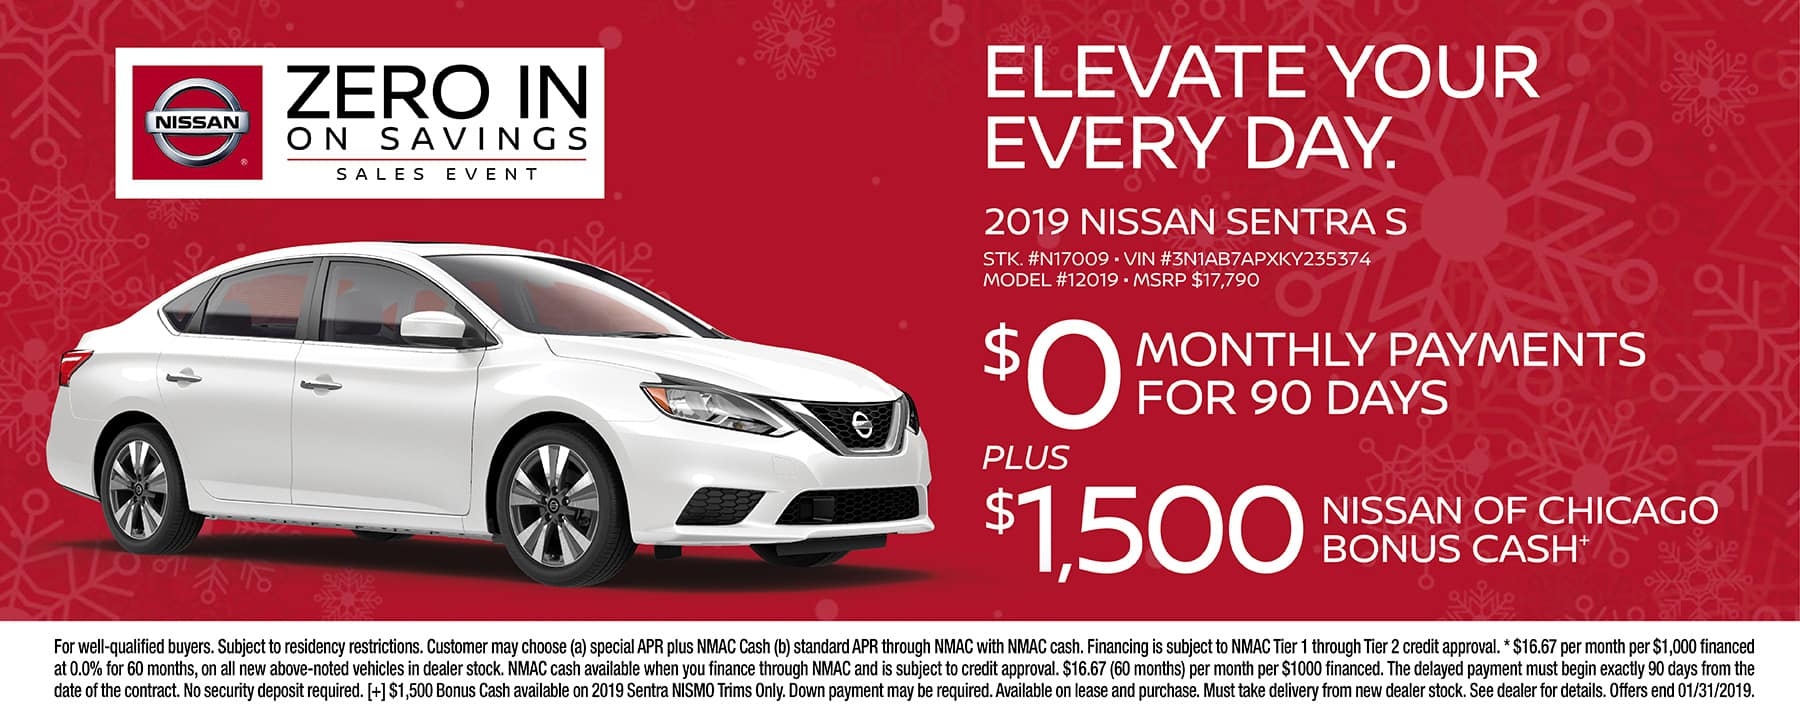 Zero in on Savings with the 2019 Nissan Sentra